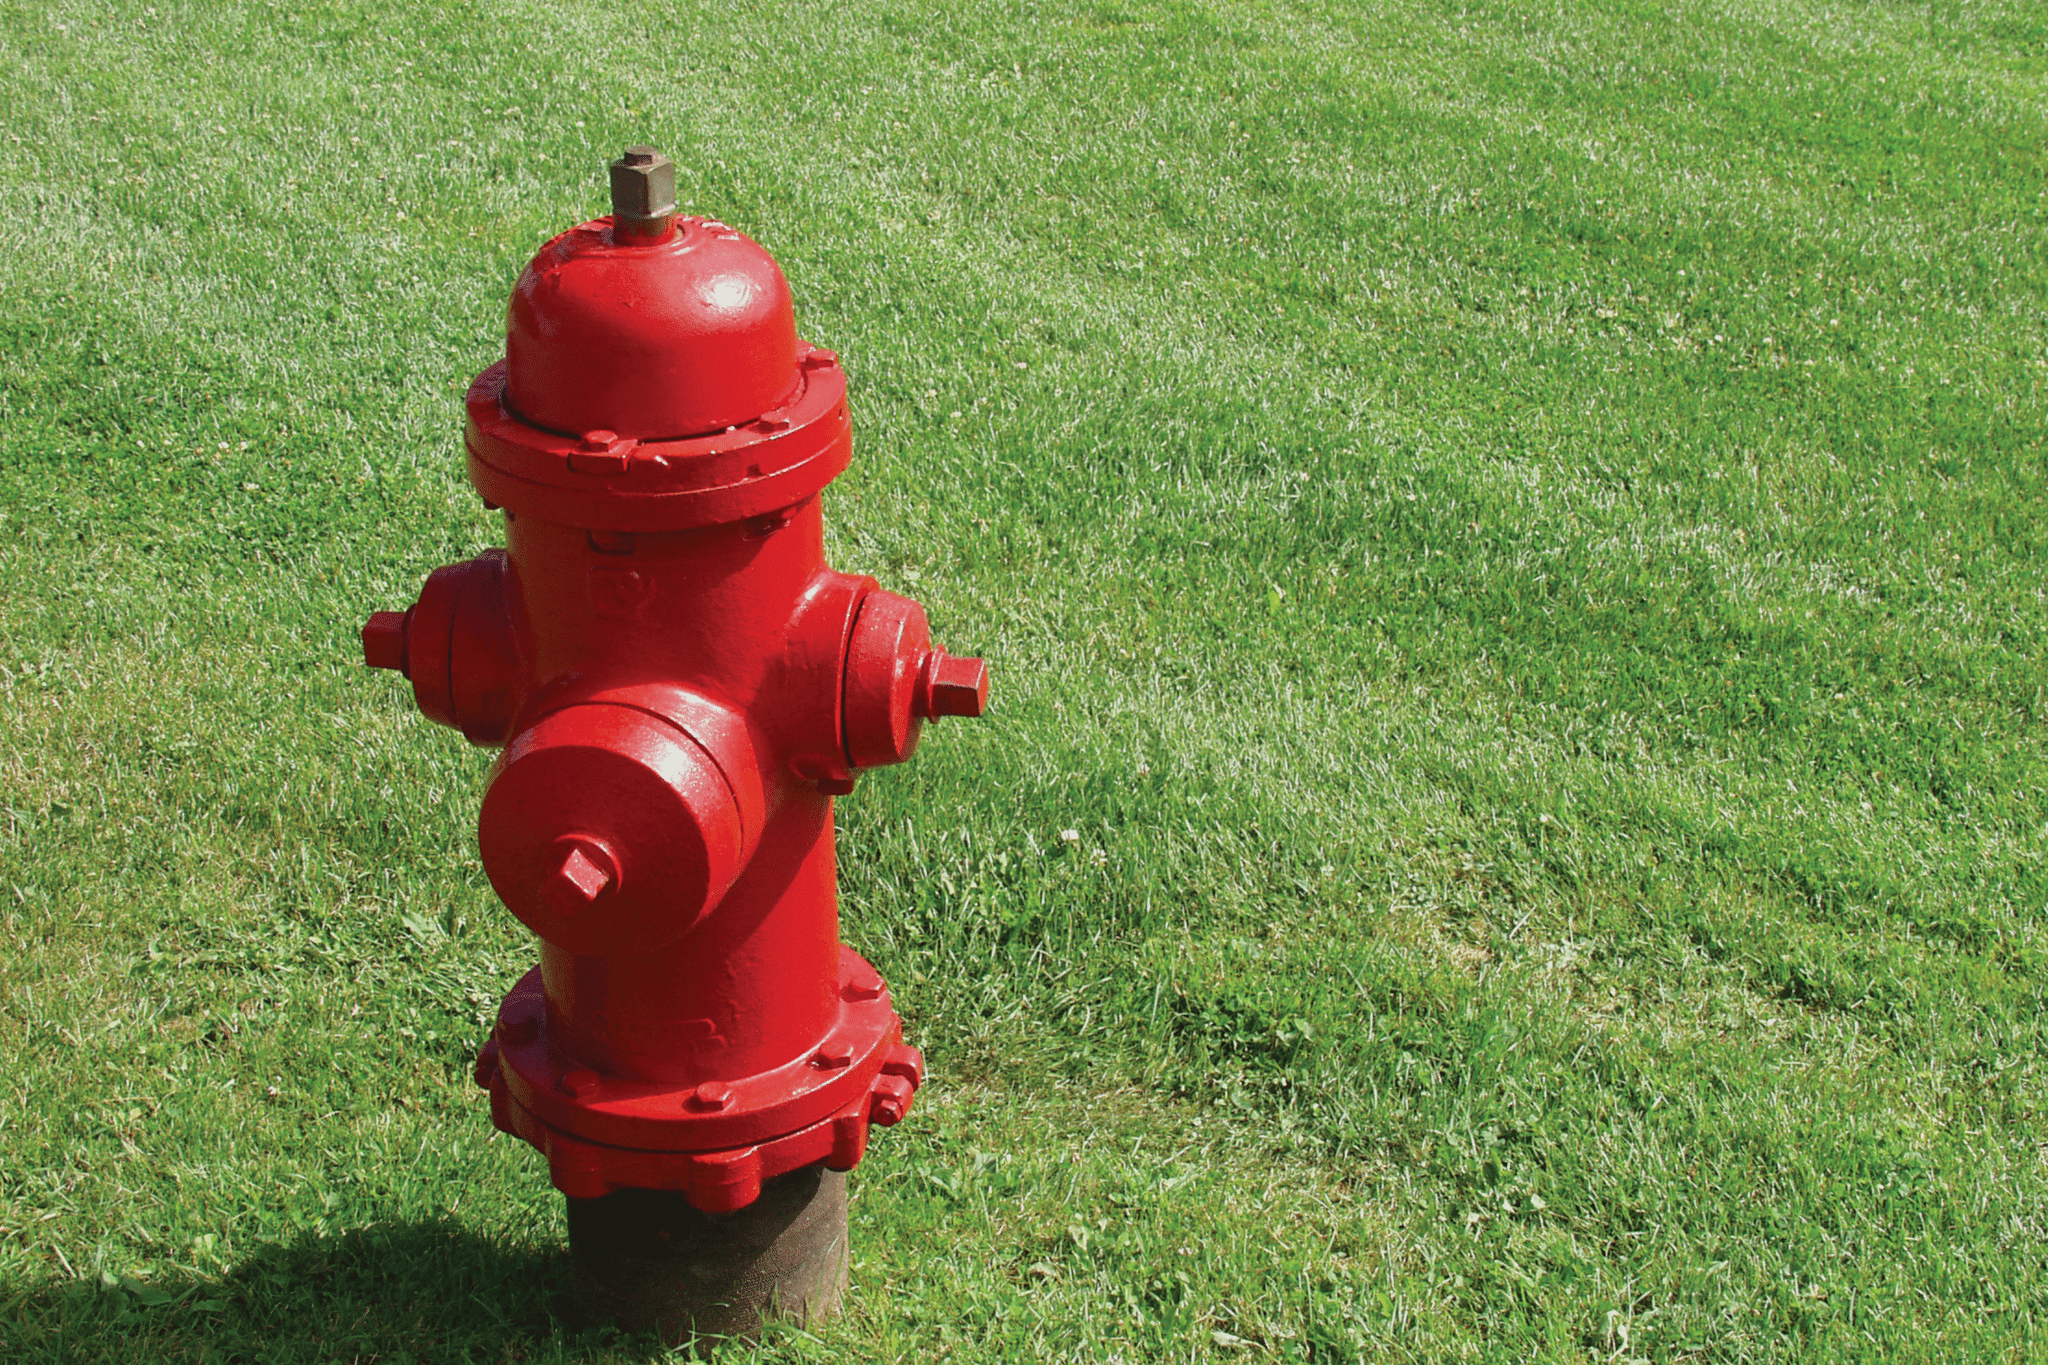 Red industrial fire hydrant in nicely manicured lawn